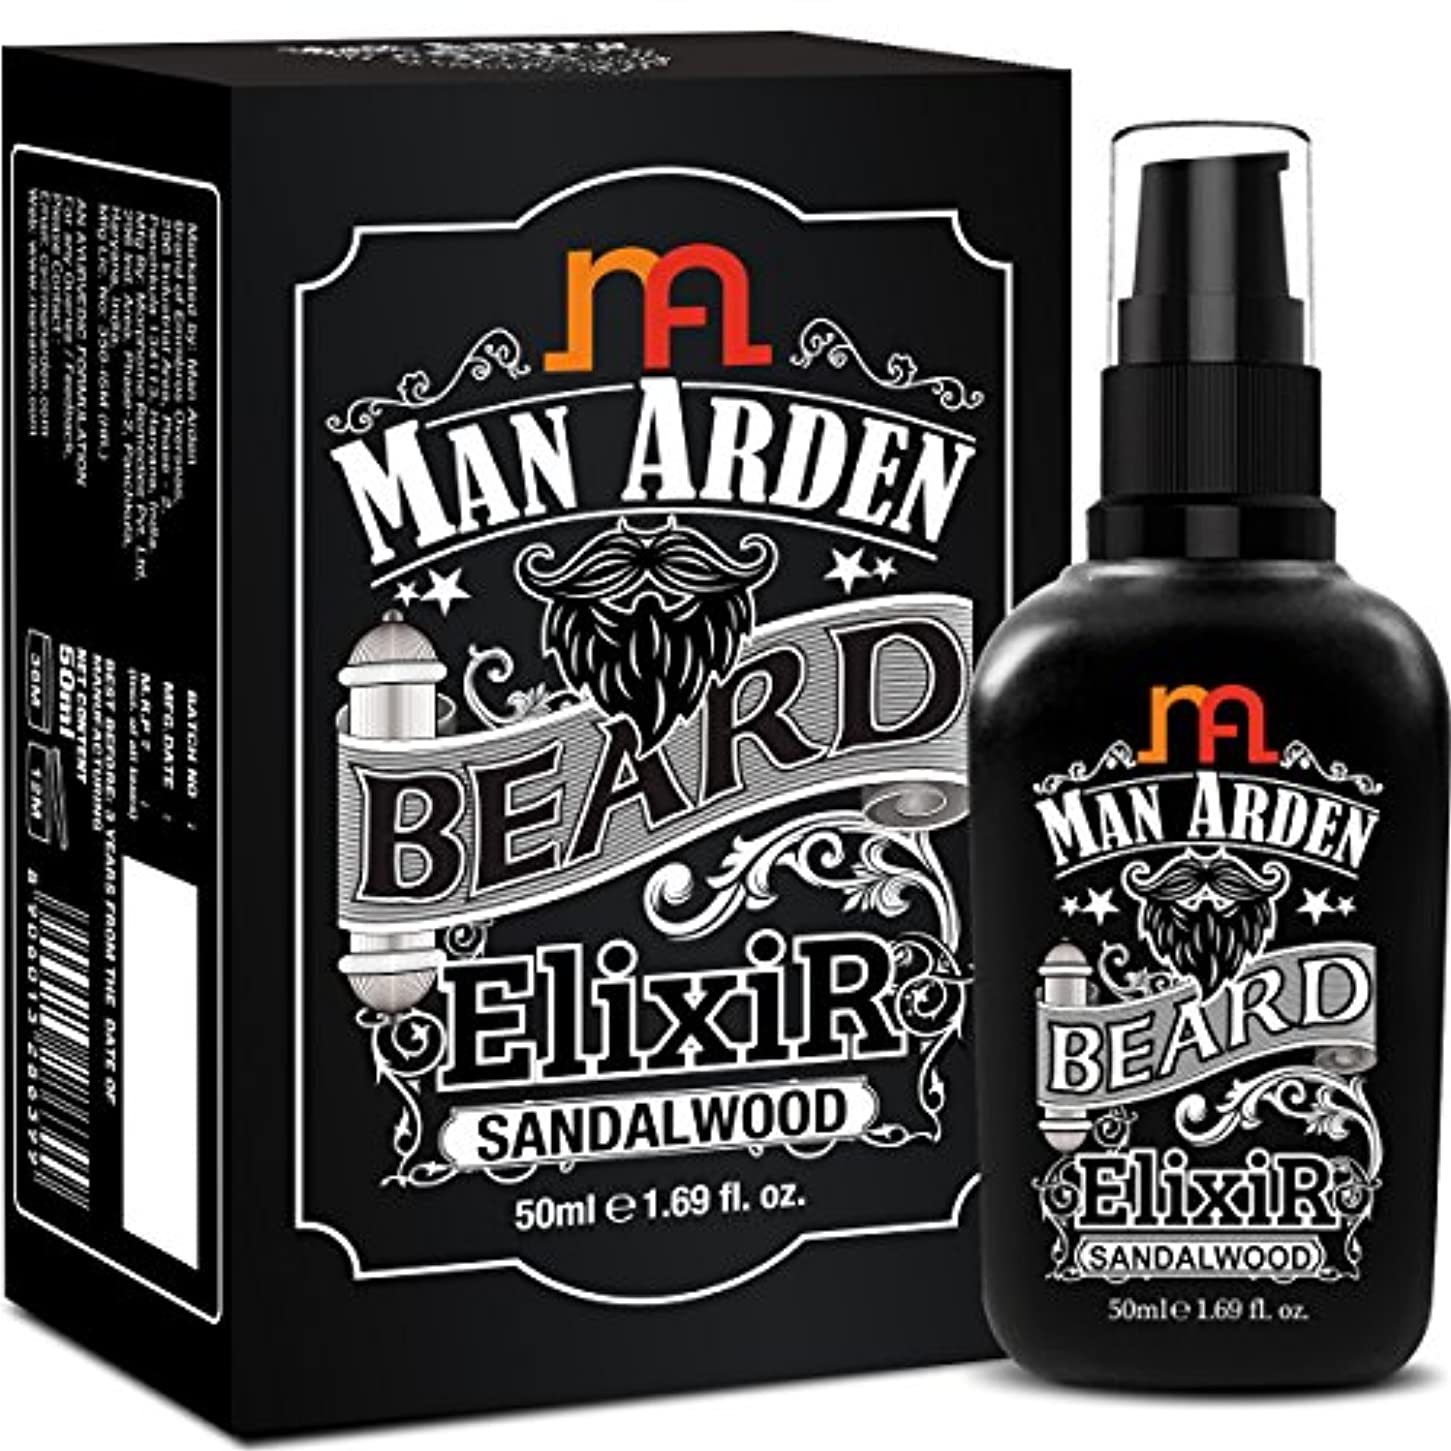 つま先手綱不機嫌そうなMan Arden Beard Elixir Oil 50ml (Sandalwood) - 7 Oils Blend For Beard Repair, Growth & Nourishment8906013286399